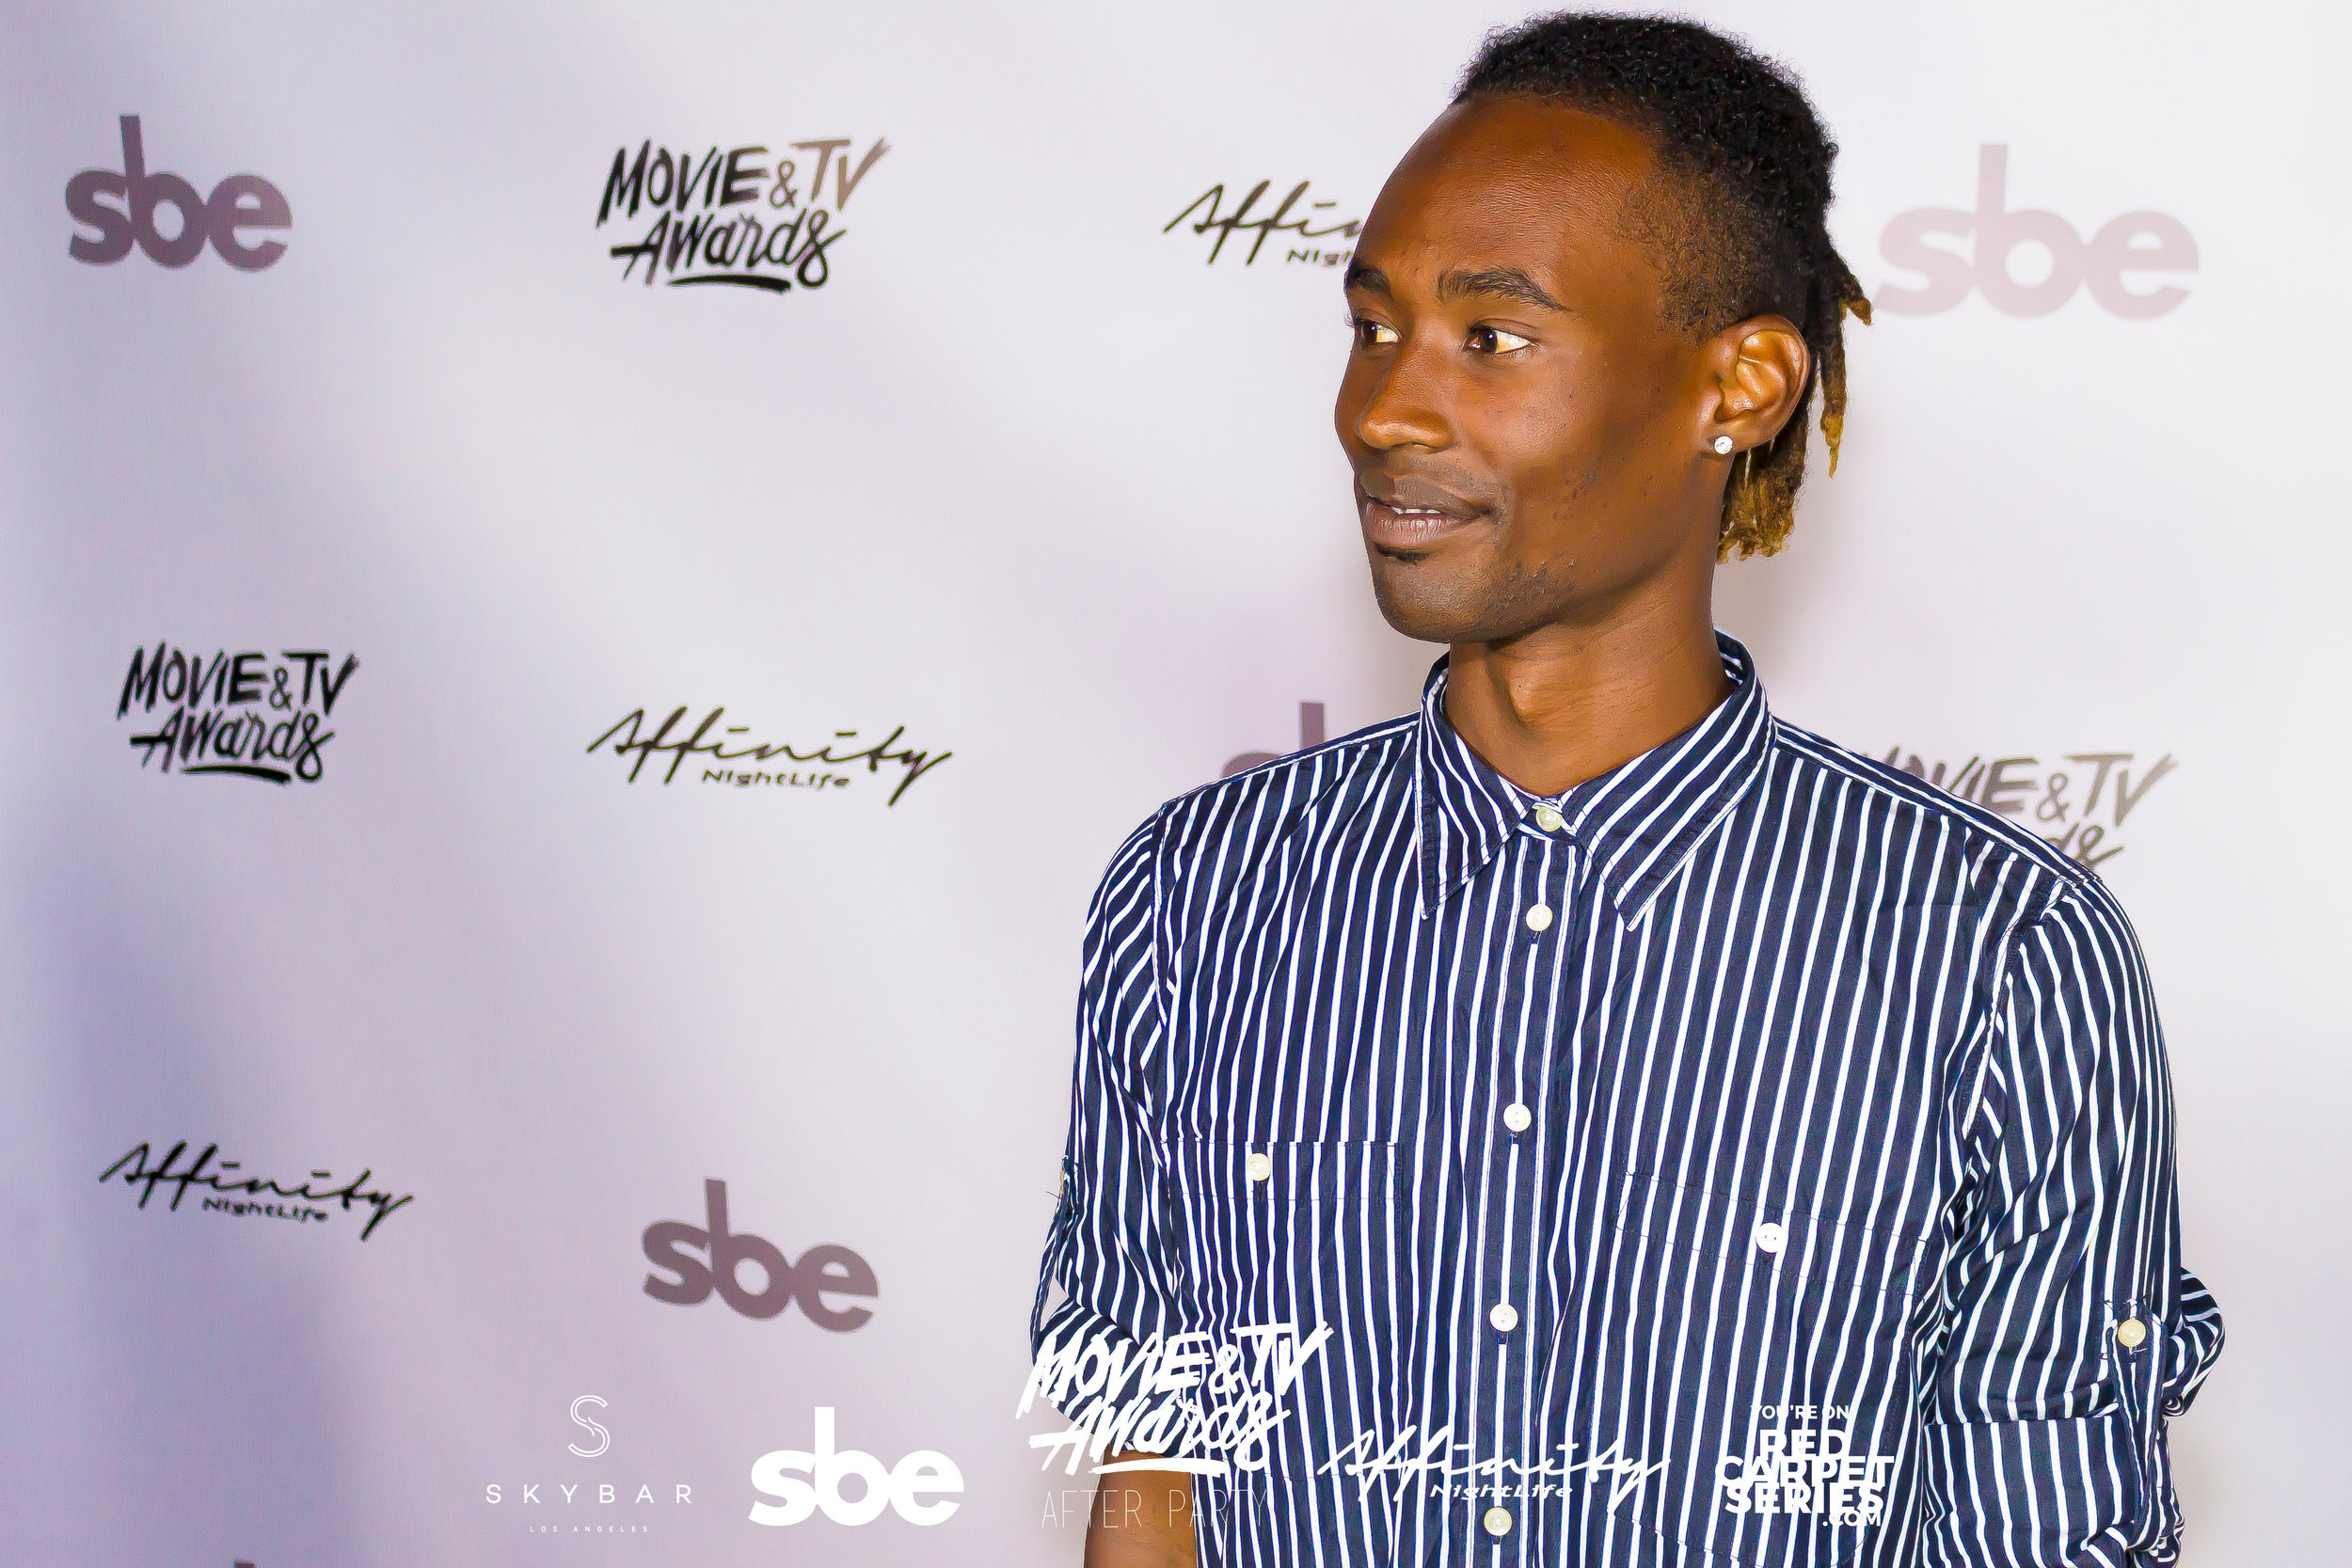 Affinity Nightlife MTV Movie & TV Awards After Party - Skybar at Mondrian - 06-15-19 - Vol. 1_129.jpg